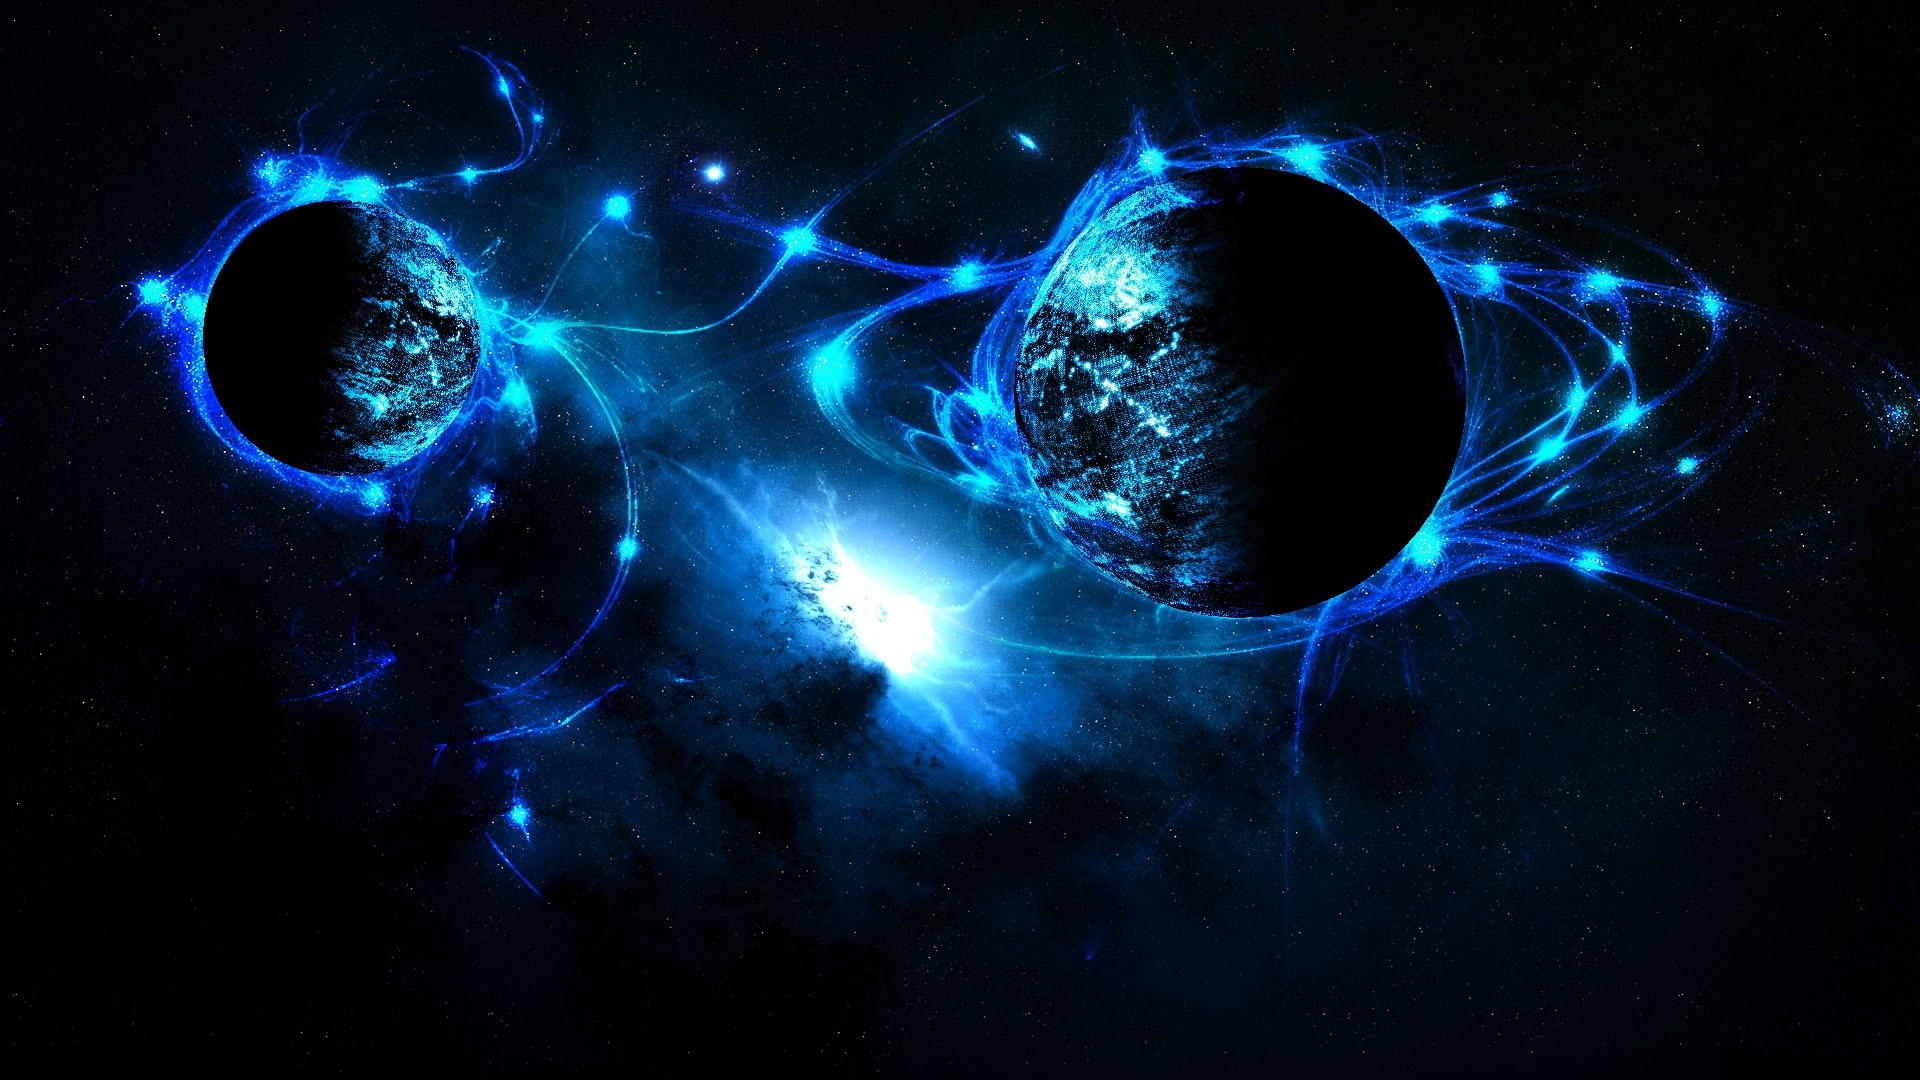 Sci Fi Outer Space Planets Stars Wallpaper